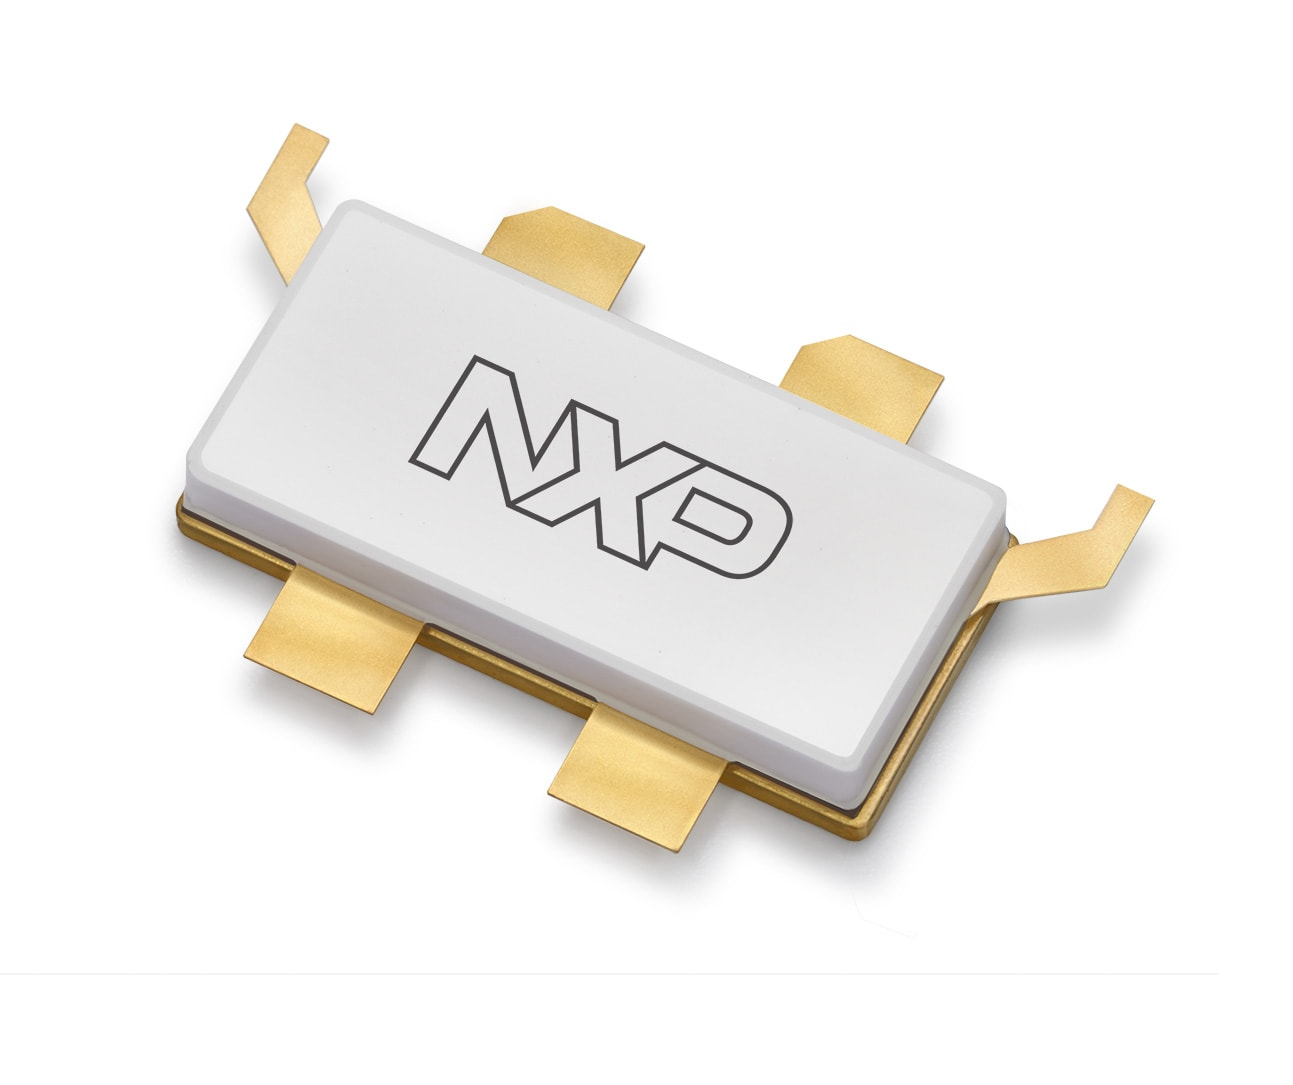 NI-780S-4S2S Package Image